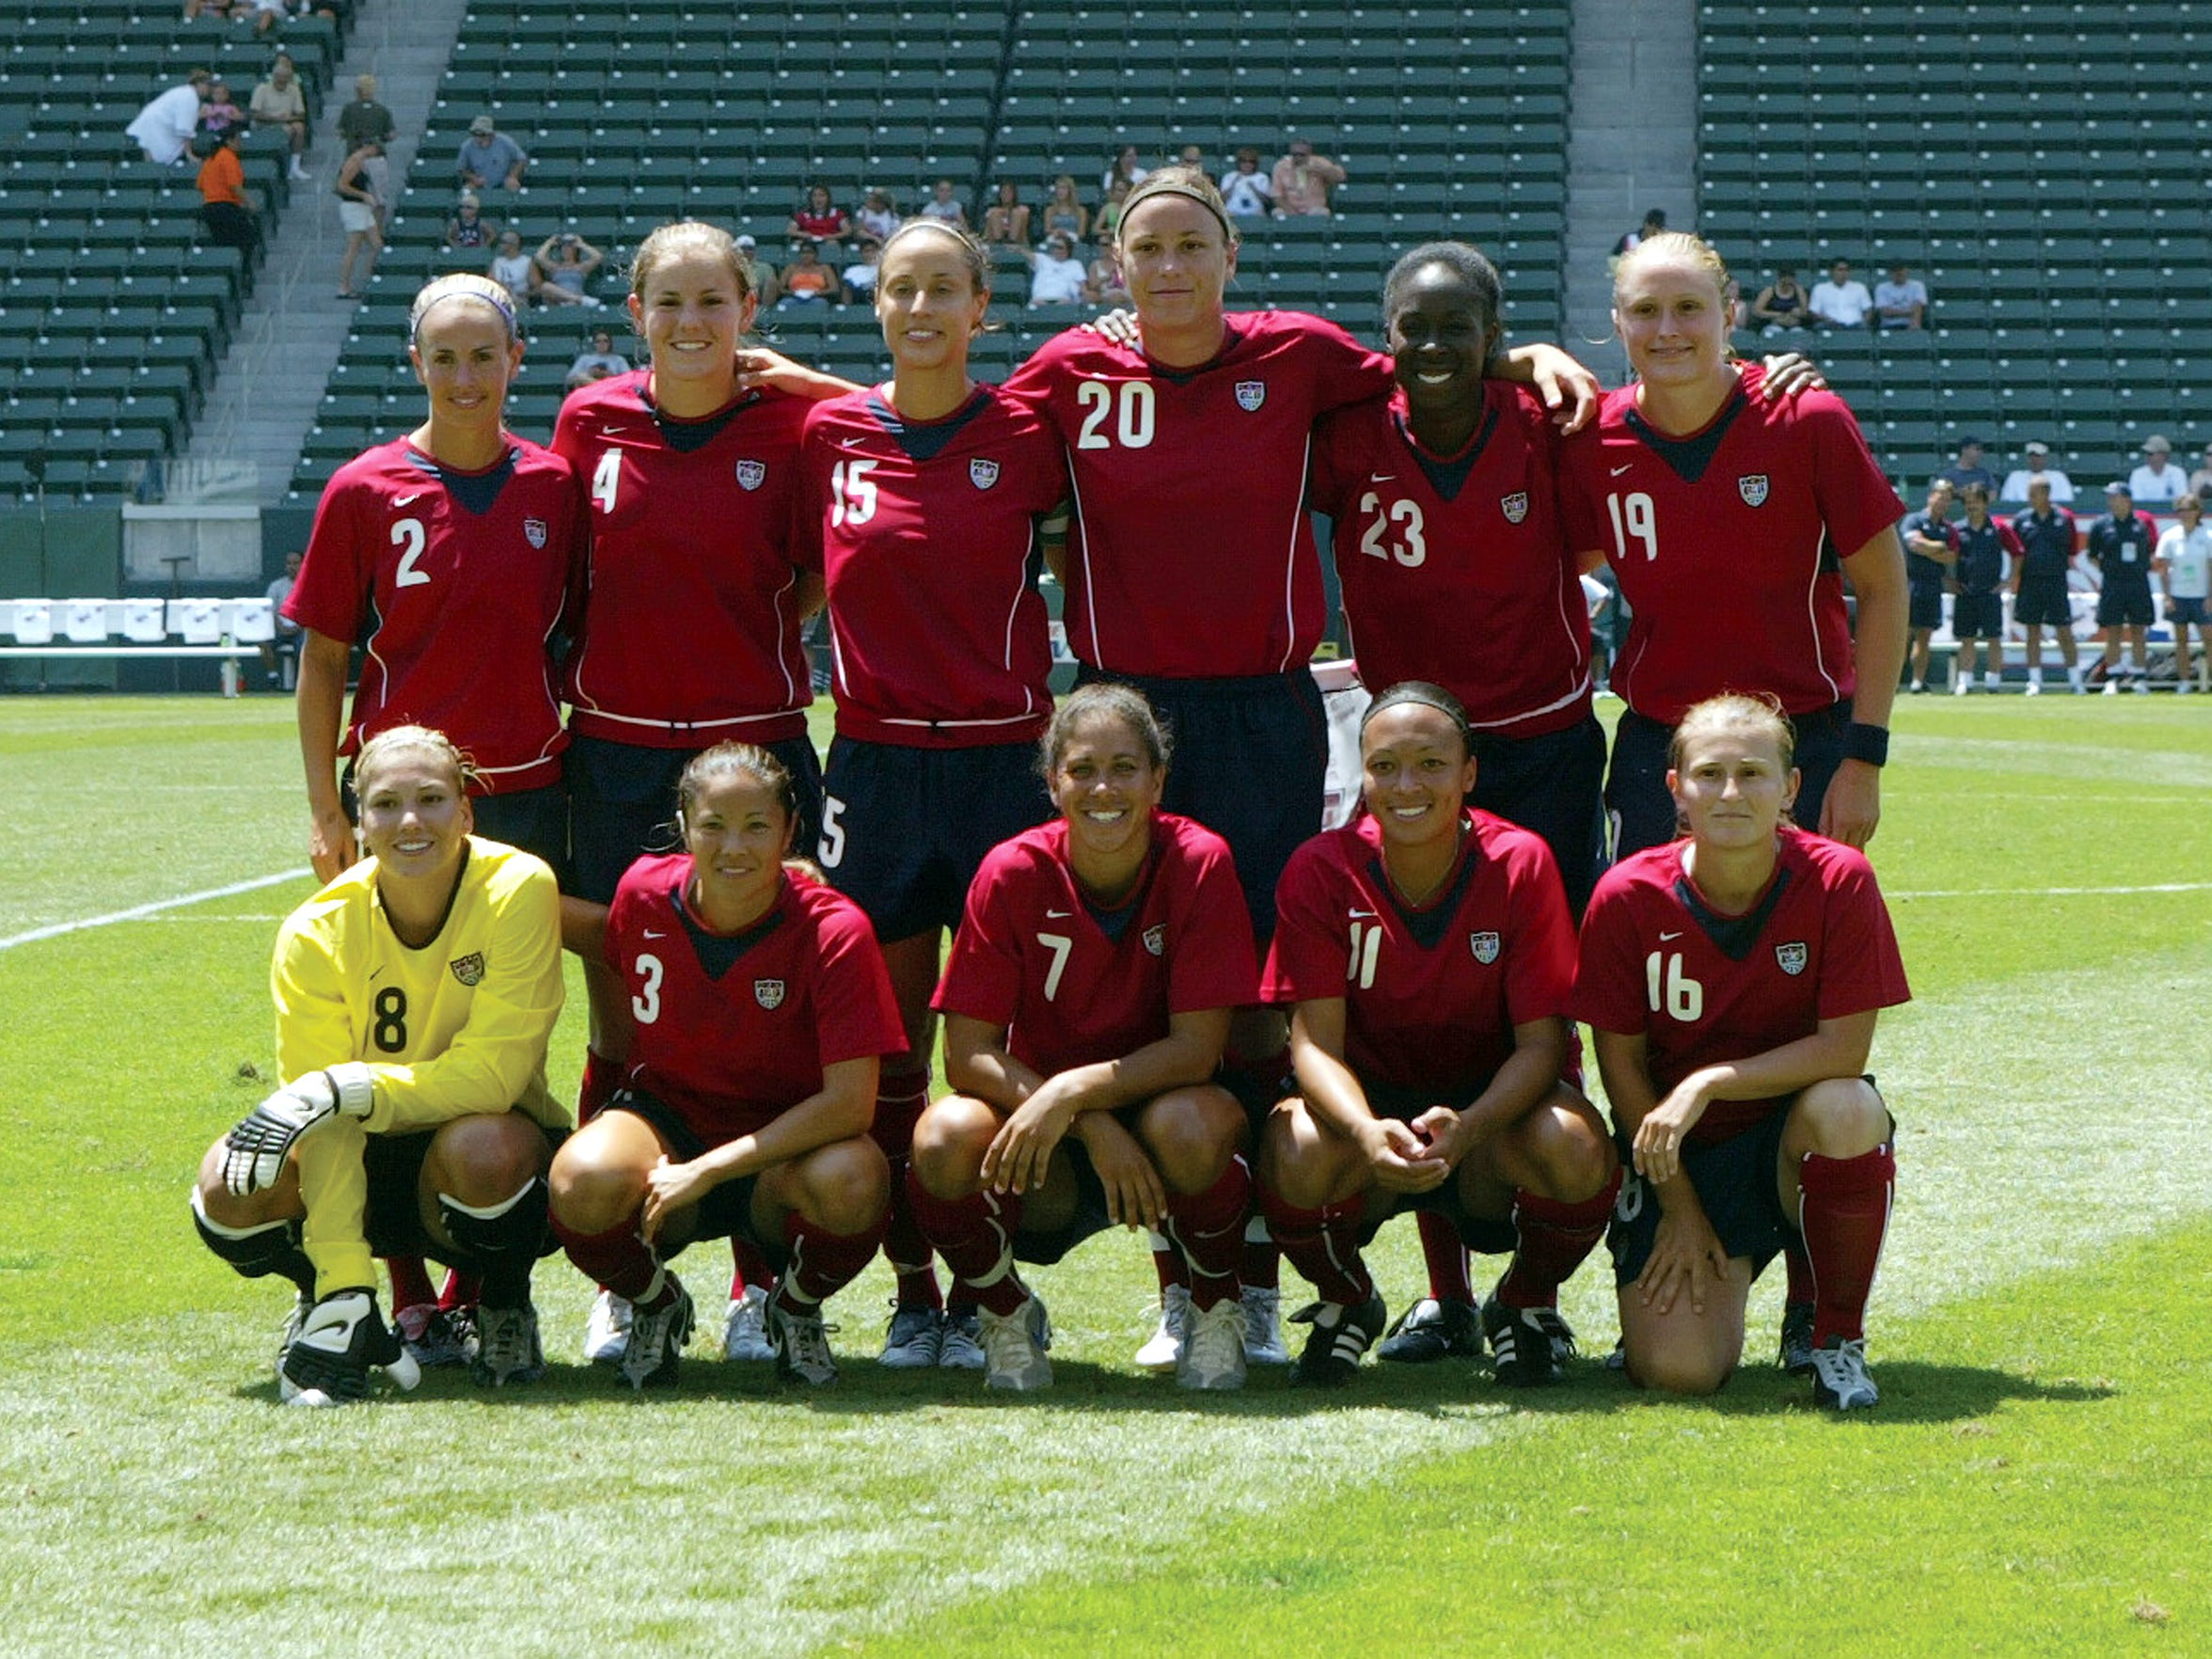 The United States' starting lineup against Iceland on July 24, 2005 included Abby Wambach (top row, center), and Christie Welsh (top row, right), the Massapequa player that defeated her in the 1997 state championship in heartbreaking fashion.